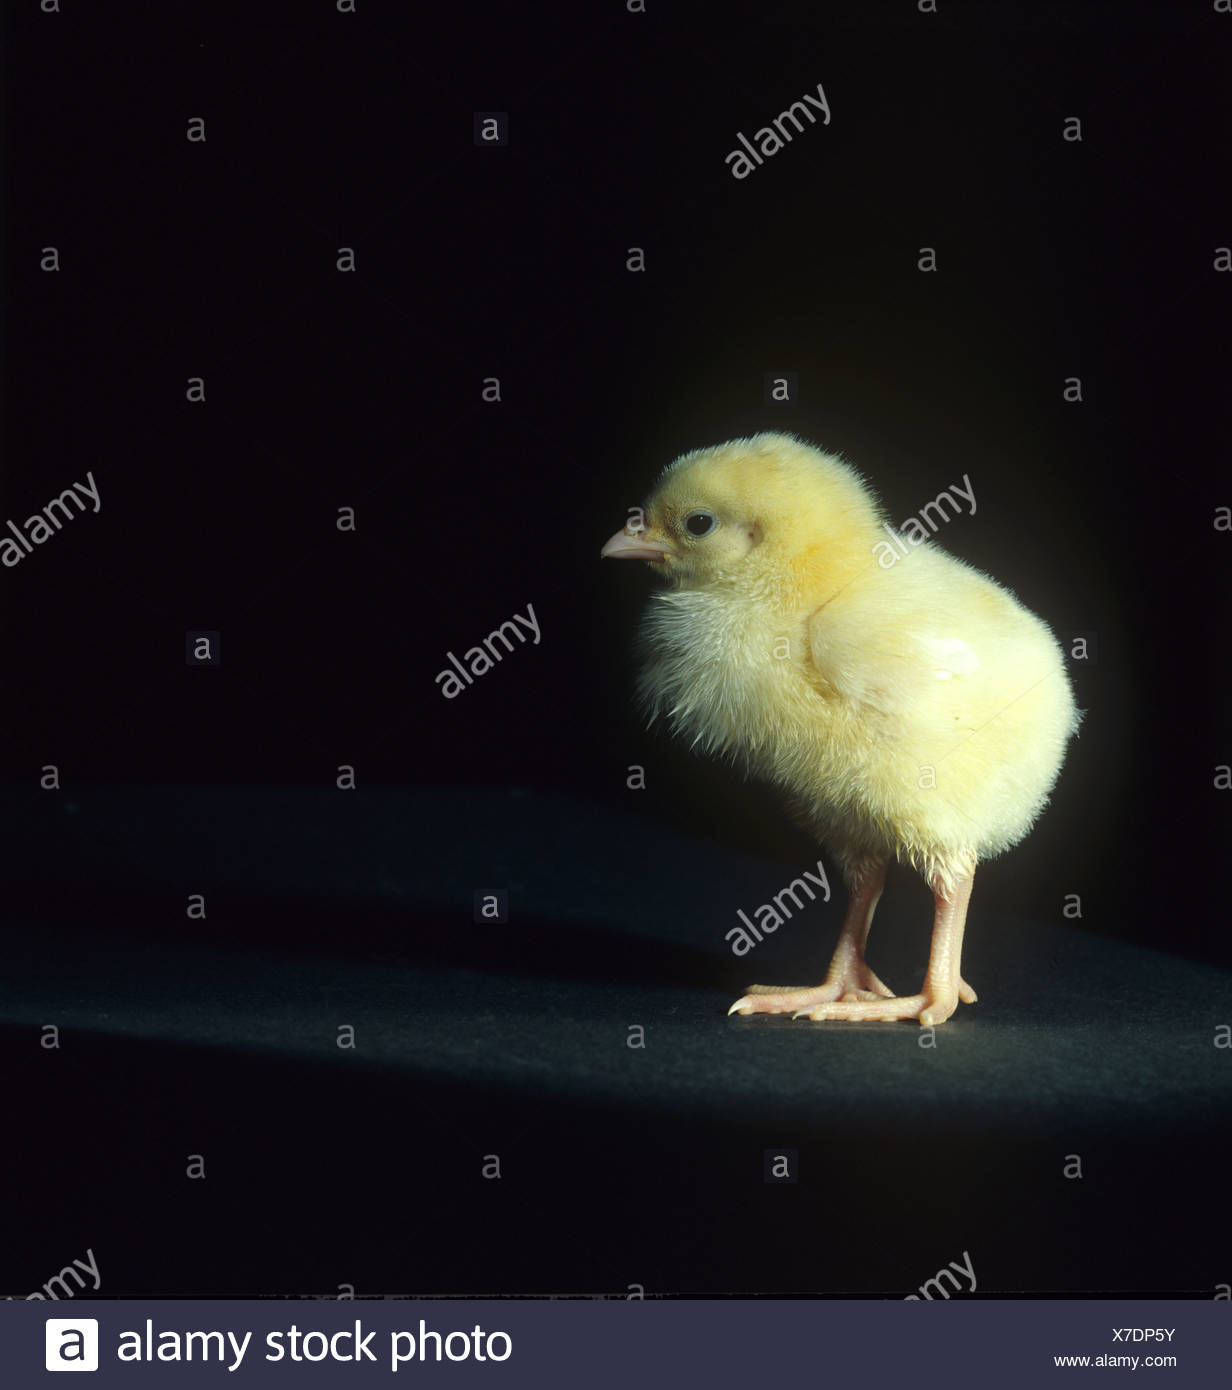 Day old chick against a black background - Stock Image